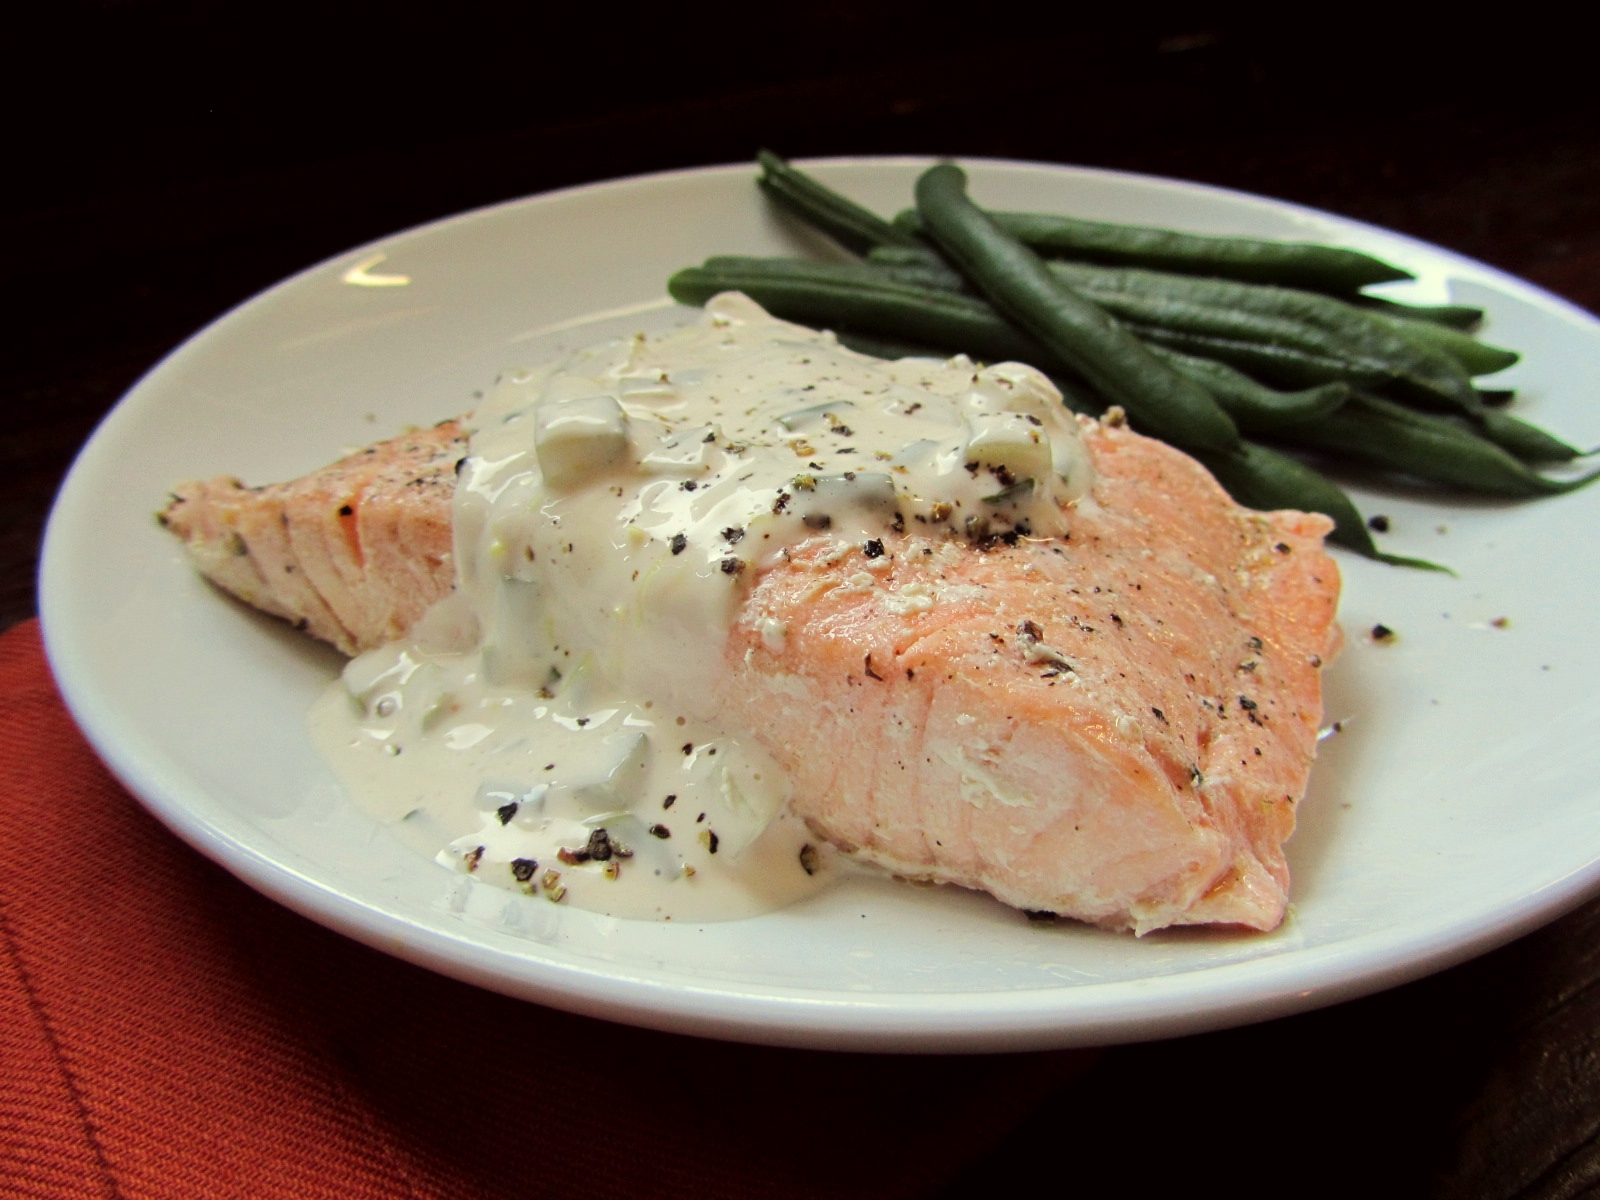 Poached Salmon with Homemade Tartar Sauce - In Hot Water